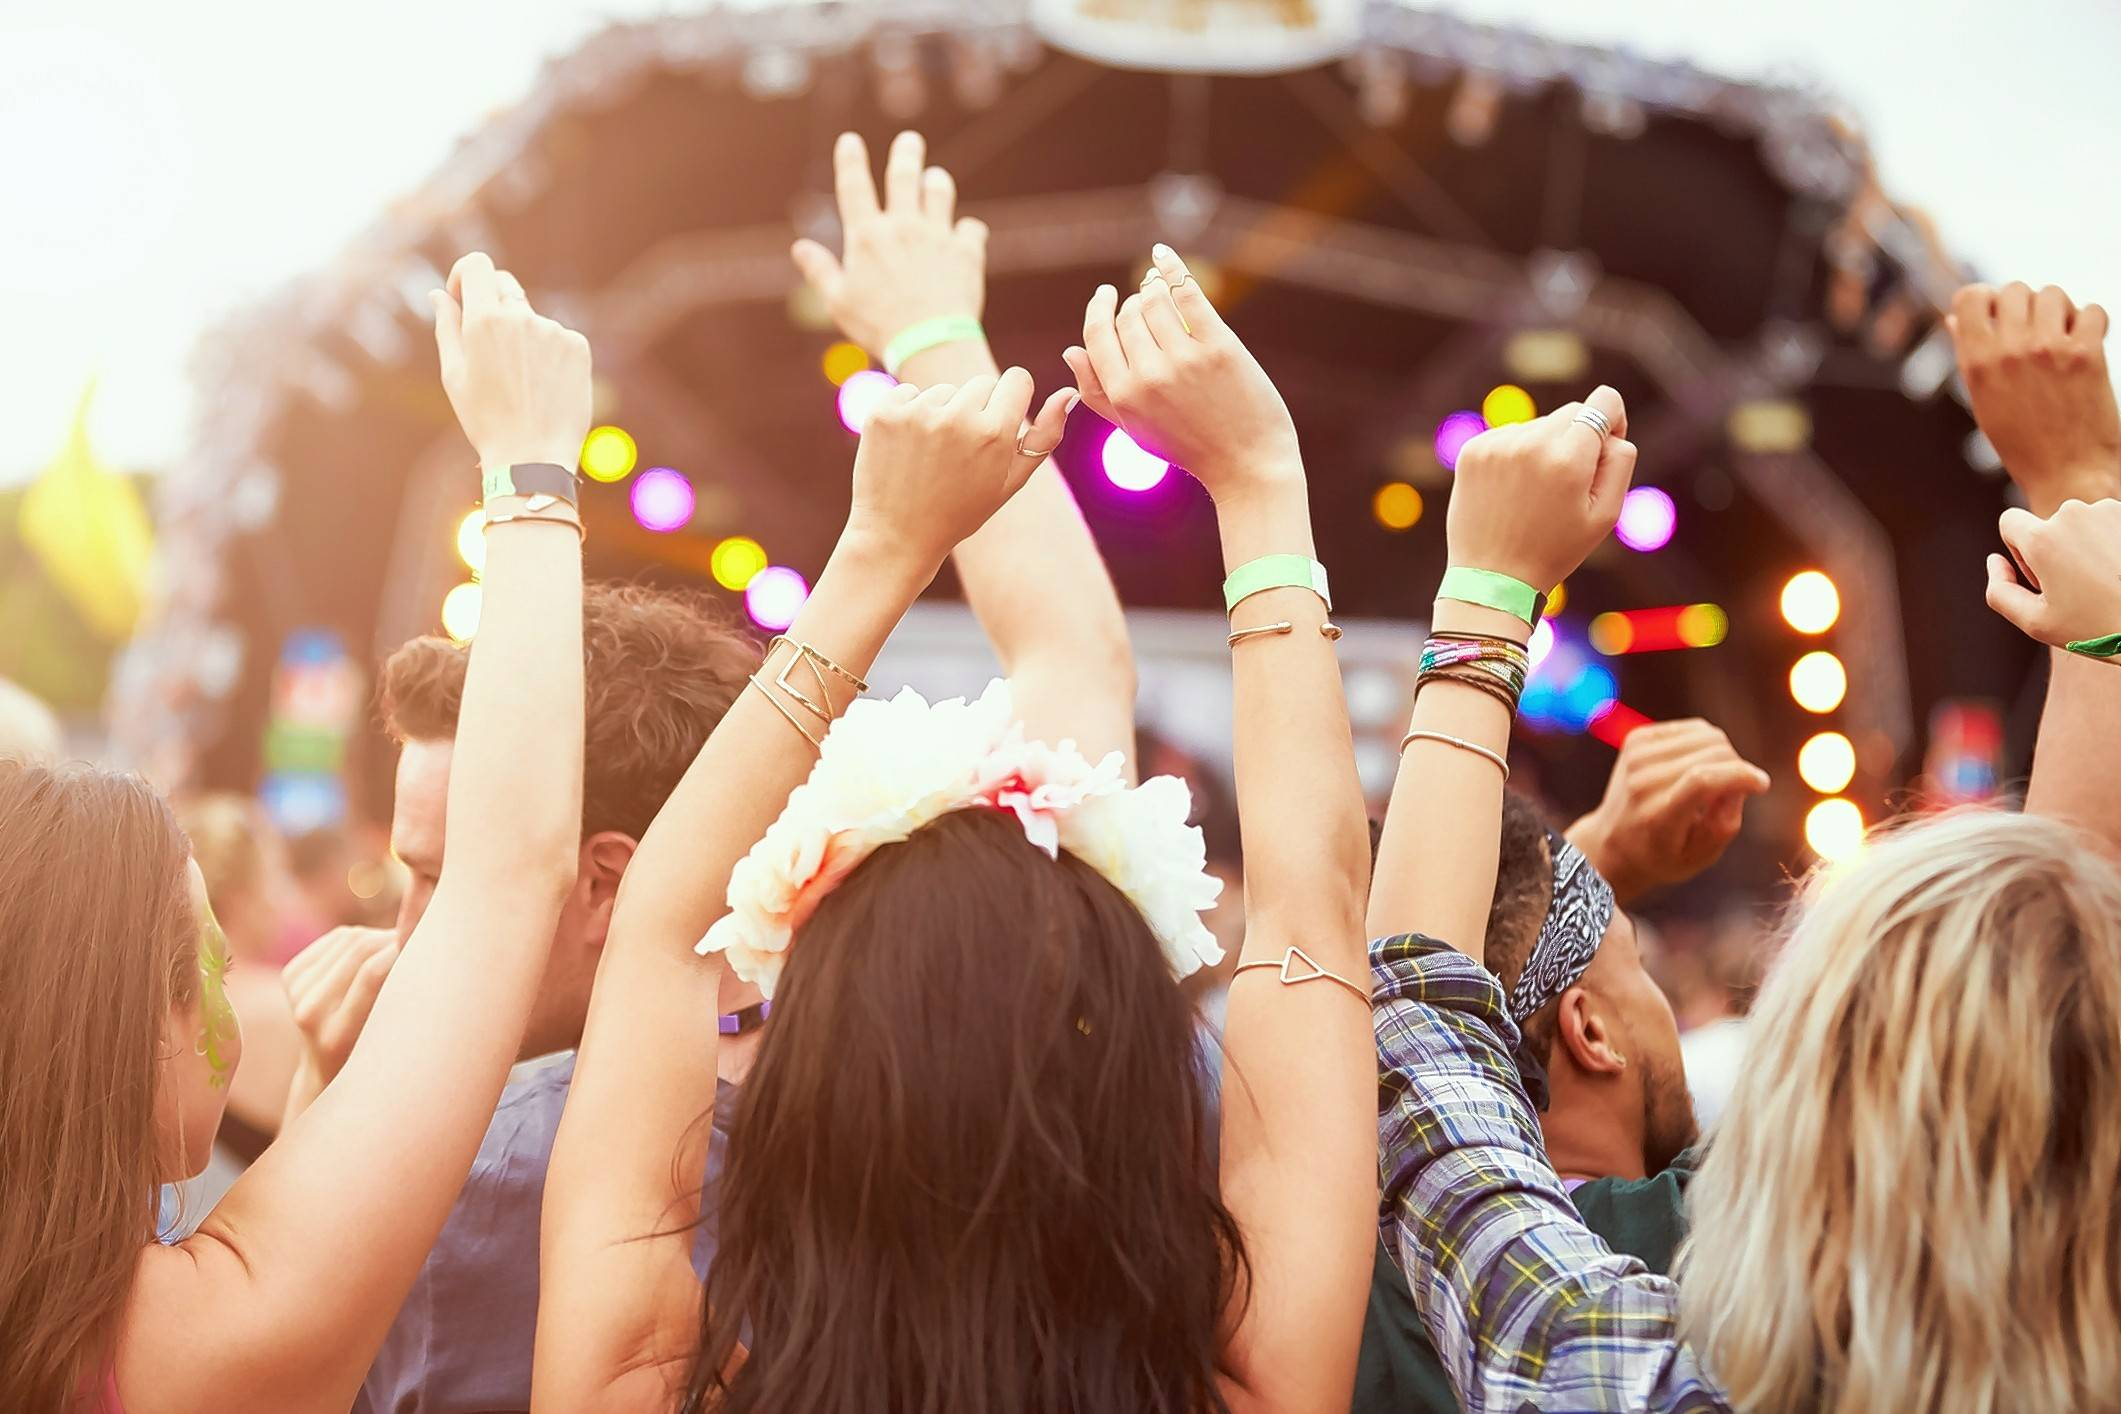 People who attend live music events report higher satisfaction with their lives, new research shows.